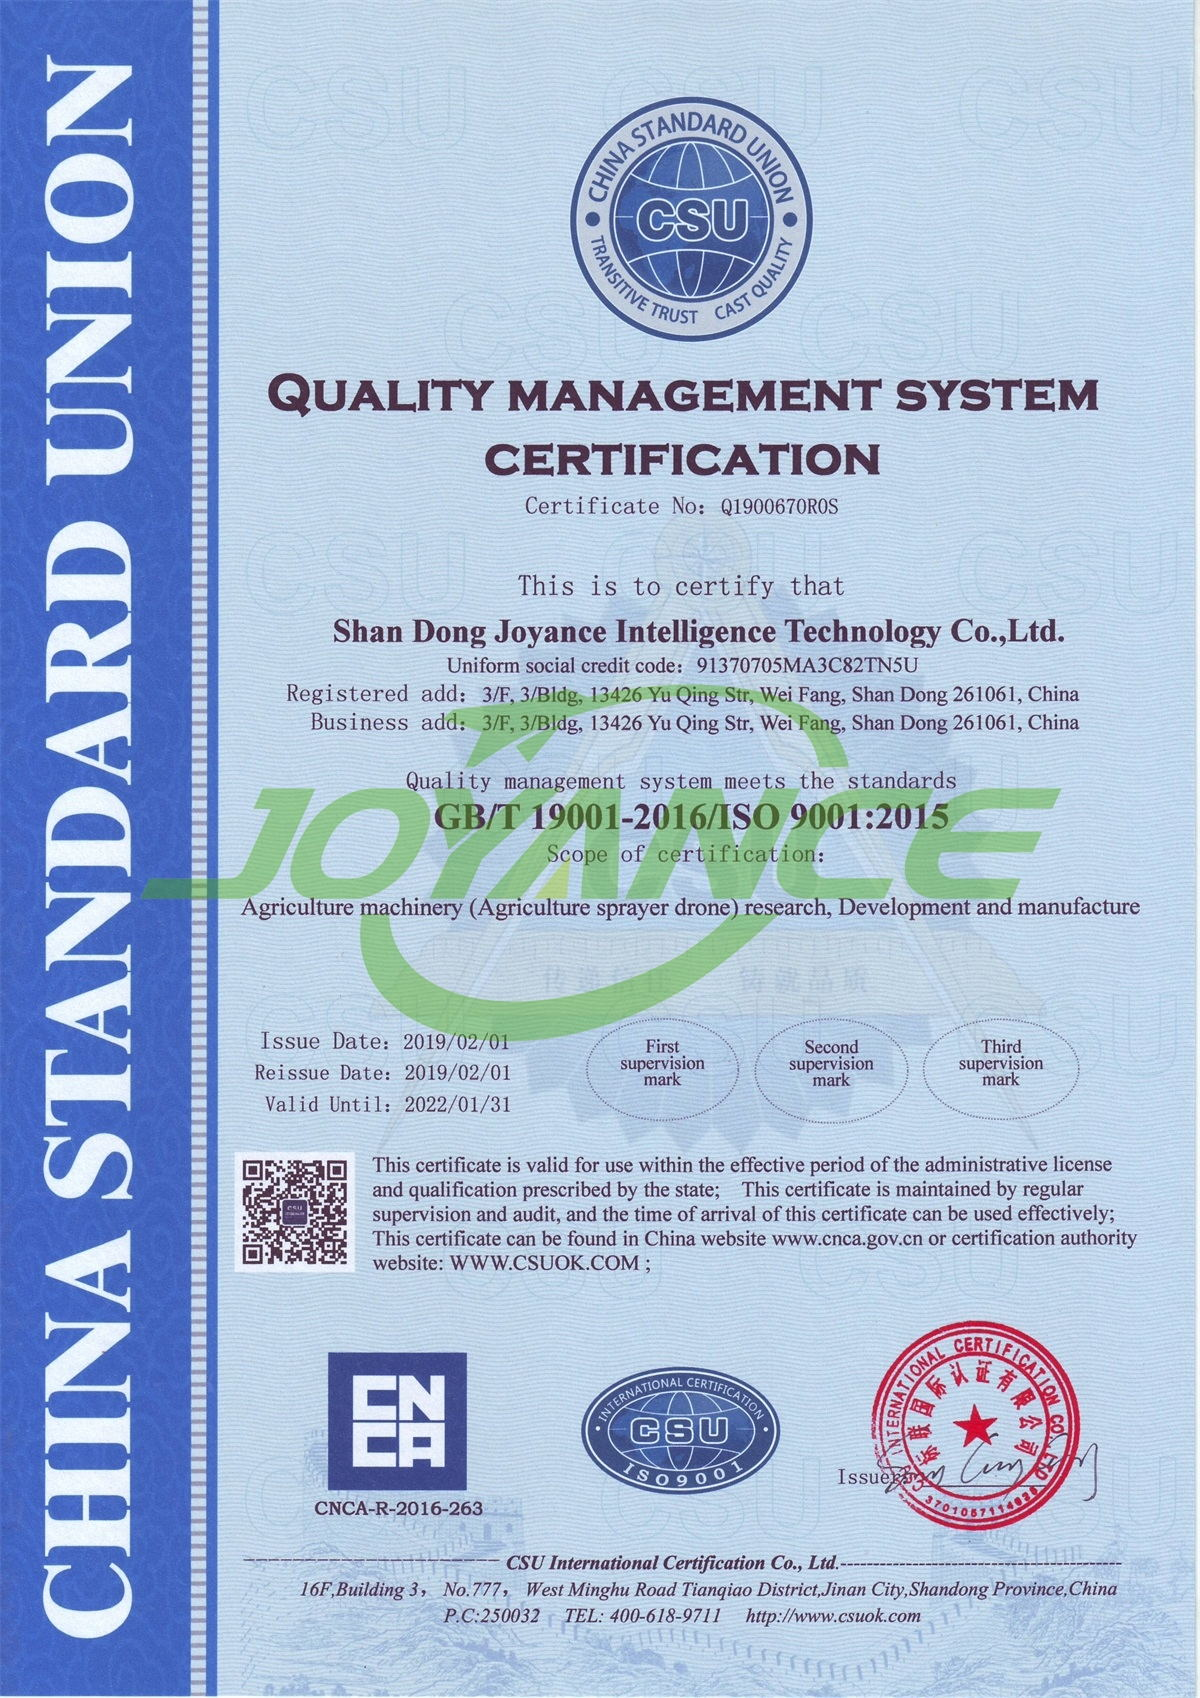 ISO 9001 quality management standards